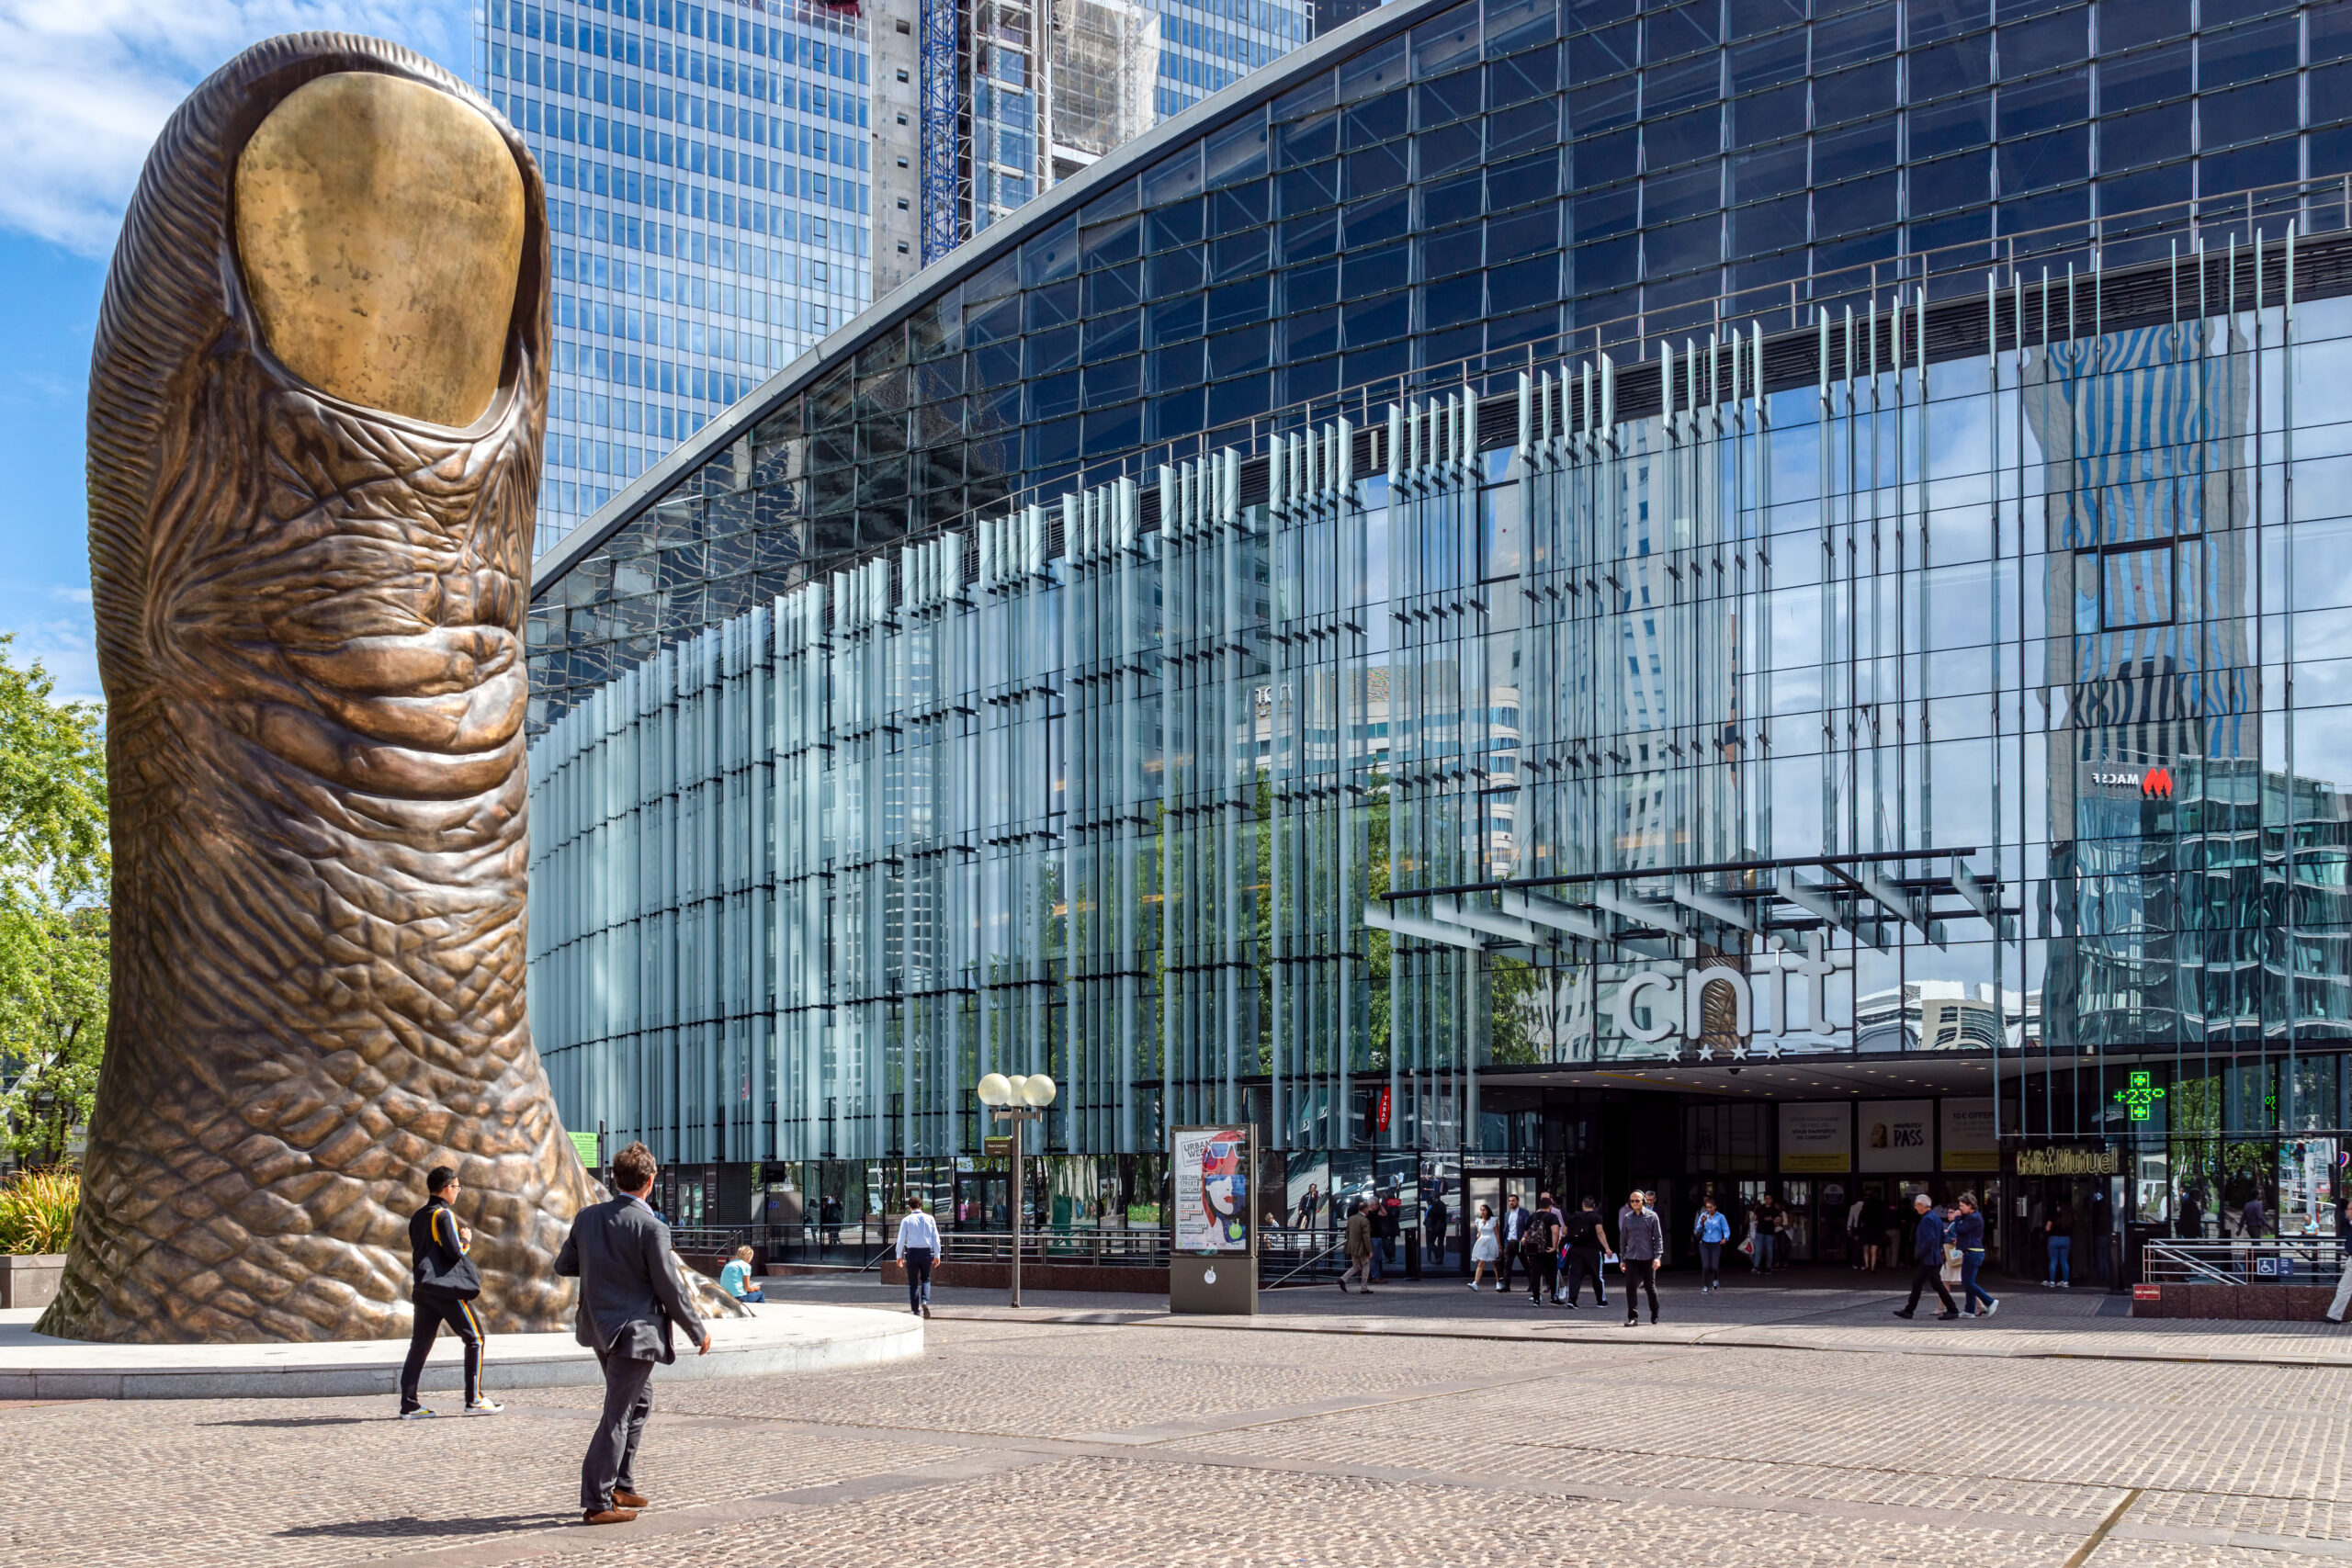 Cesar Baldaccini Thumb tommel Paris La defense distrikt kunst shopping